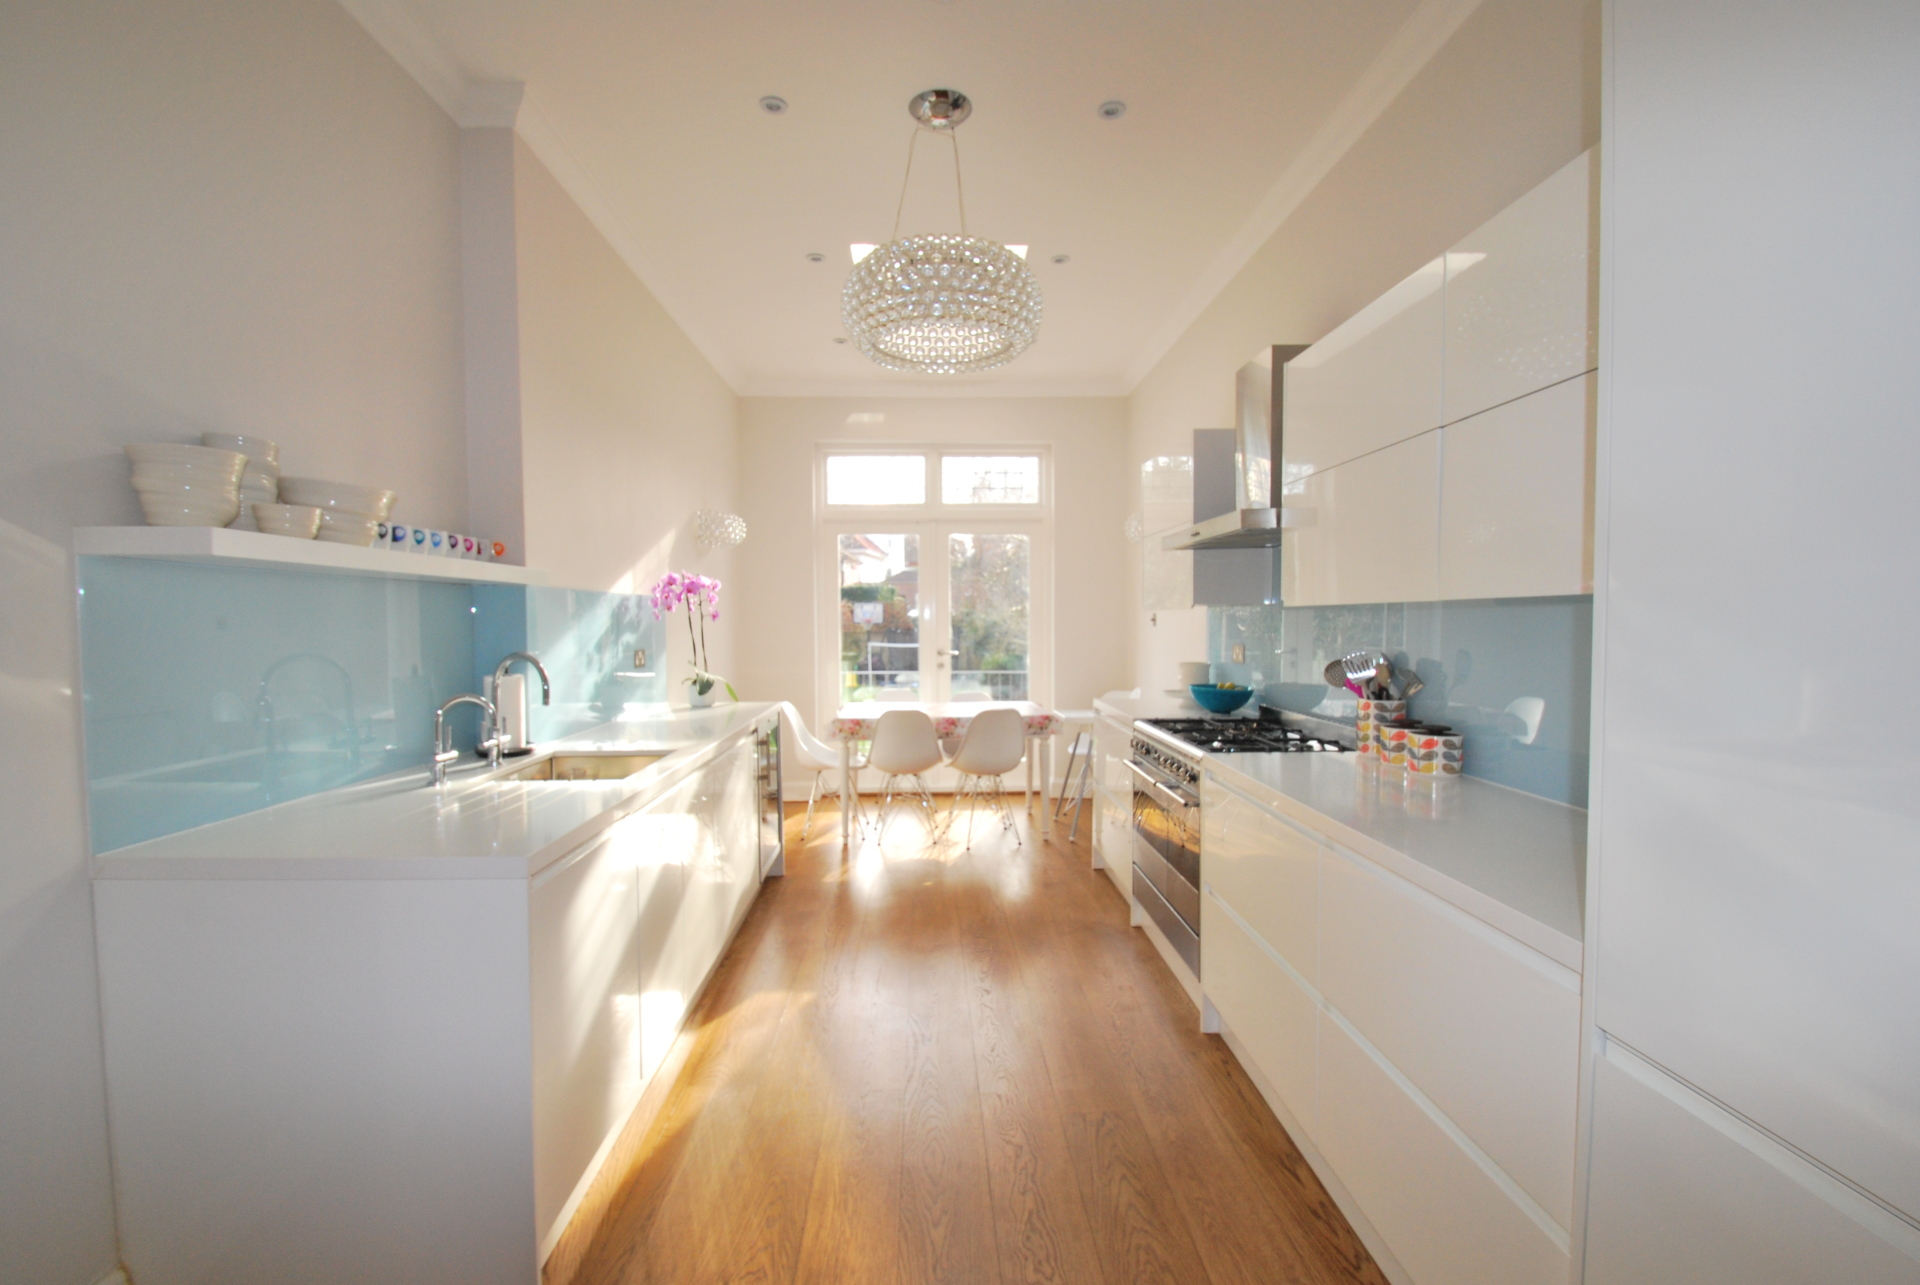 Kitchen featured on HOUZZ!